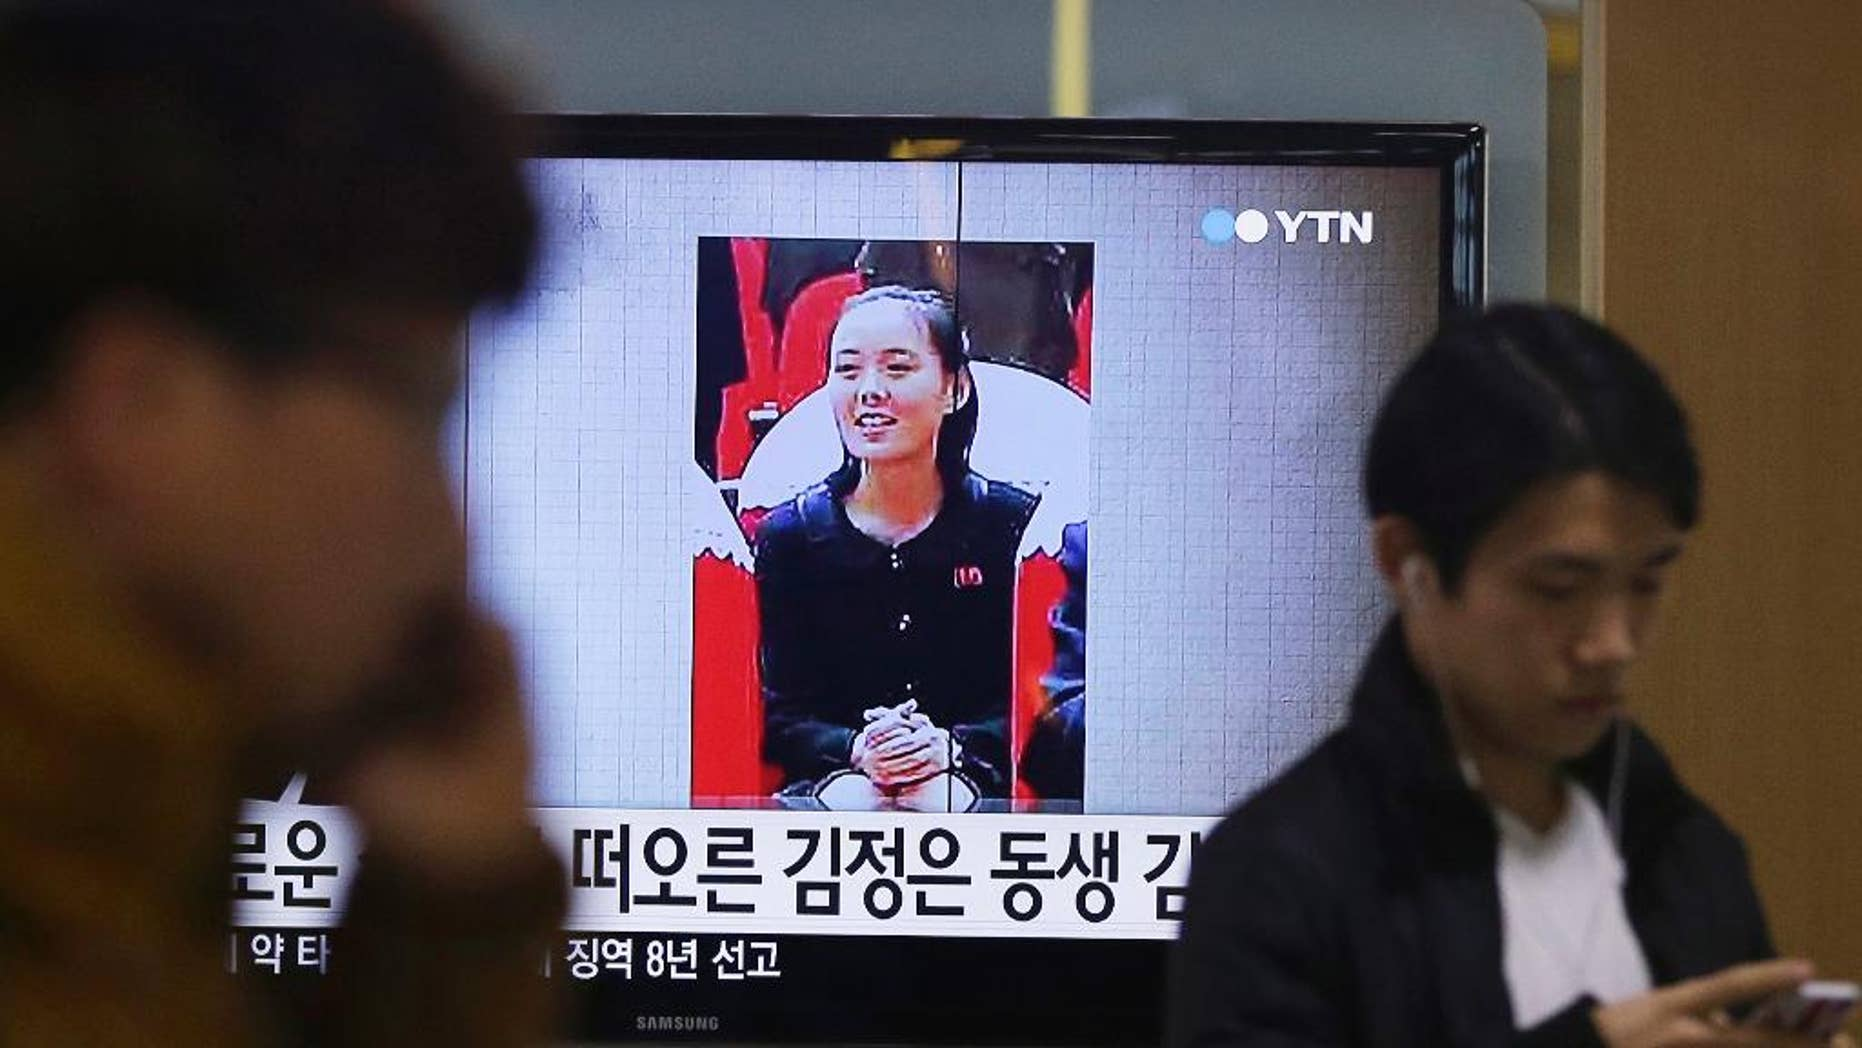 "FILE - In this Nov. 27, 2014 file photo, an image of North Korean leader Kim Jong Un's younger sister Kim Yo Jong is shown on a screen broadcasting a TV news program at Seoul Railway Station in Seoul, South Korea. Kim Yo Jong is among the officials who won promotions at the country's ruling-party congress. The state-run Korean Central News Agency reported Tuesday, May 10, 2016 that Kim Yo Jong was named a member of the Workers' Party of Korea's Central Committee during the congress that ended Monday. The letters read: ""Kim Jong Un's sister."" (AP Photo/Ahn Young-joon, File)"